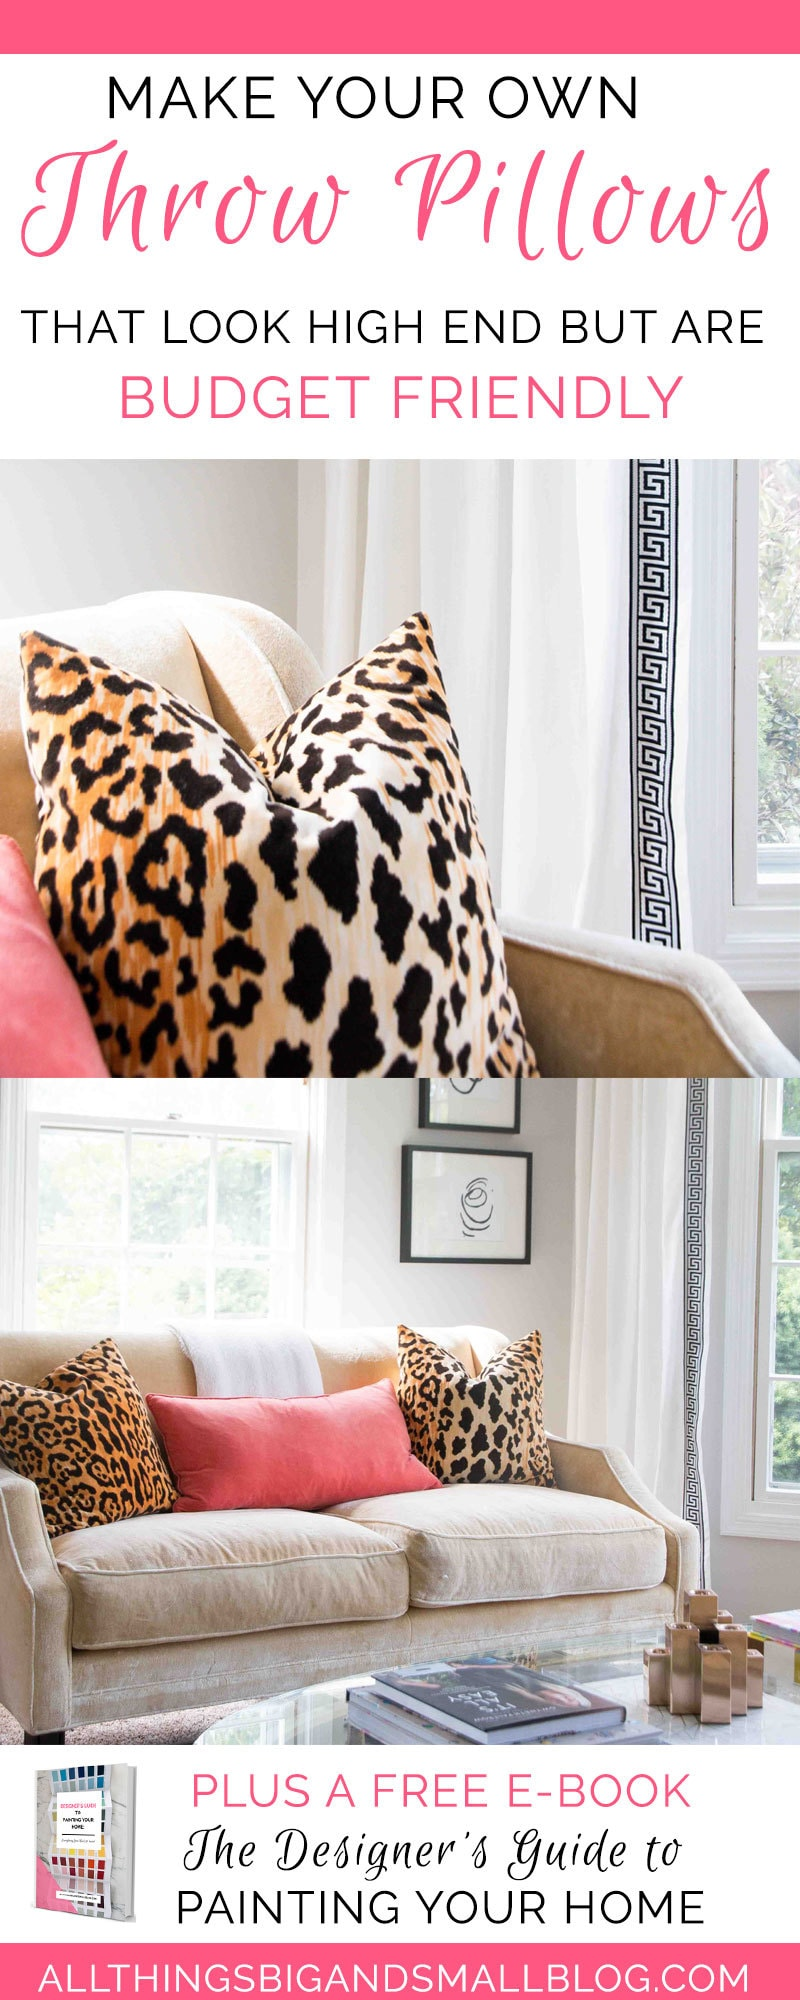 make your own throw pillow   DIY pillow cover   how to make pillow cover   ALL THINGS BIG AND SMALL